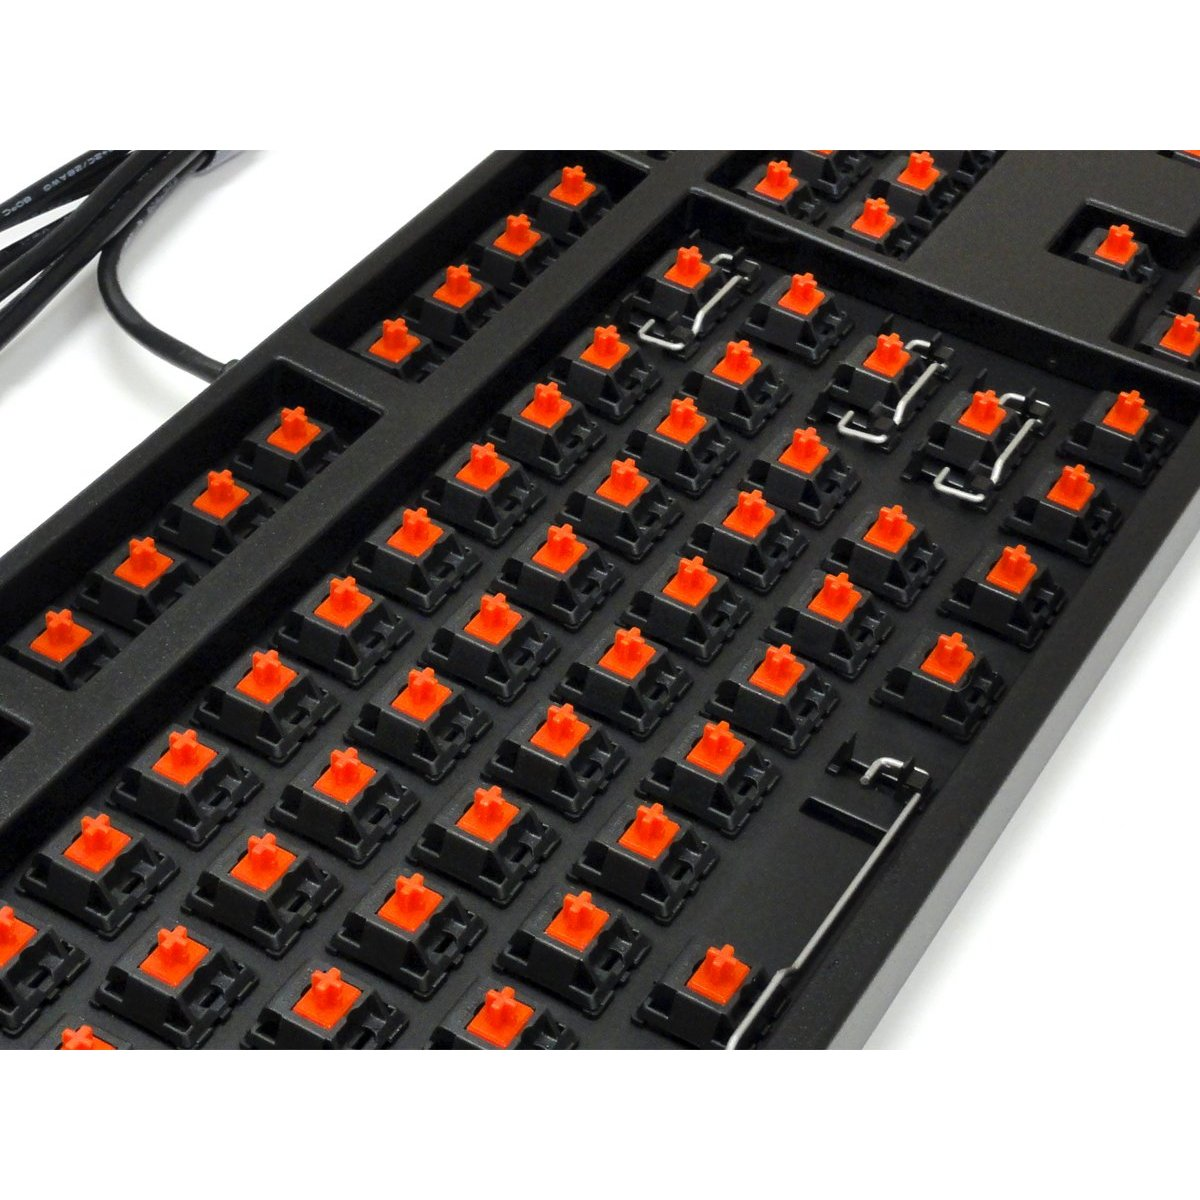 Filco Majestouch 2 NKR 104 Red Switch QWERTY (US)